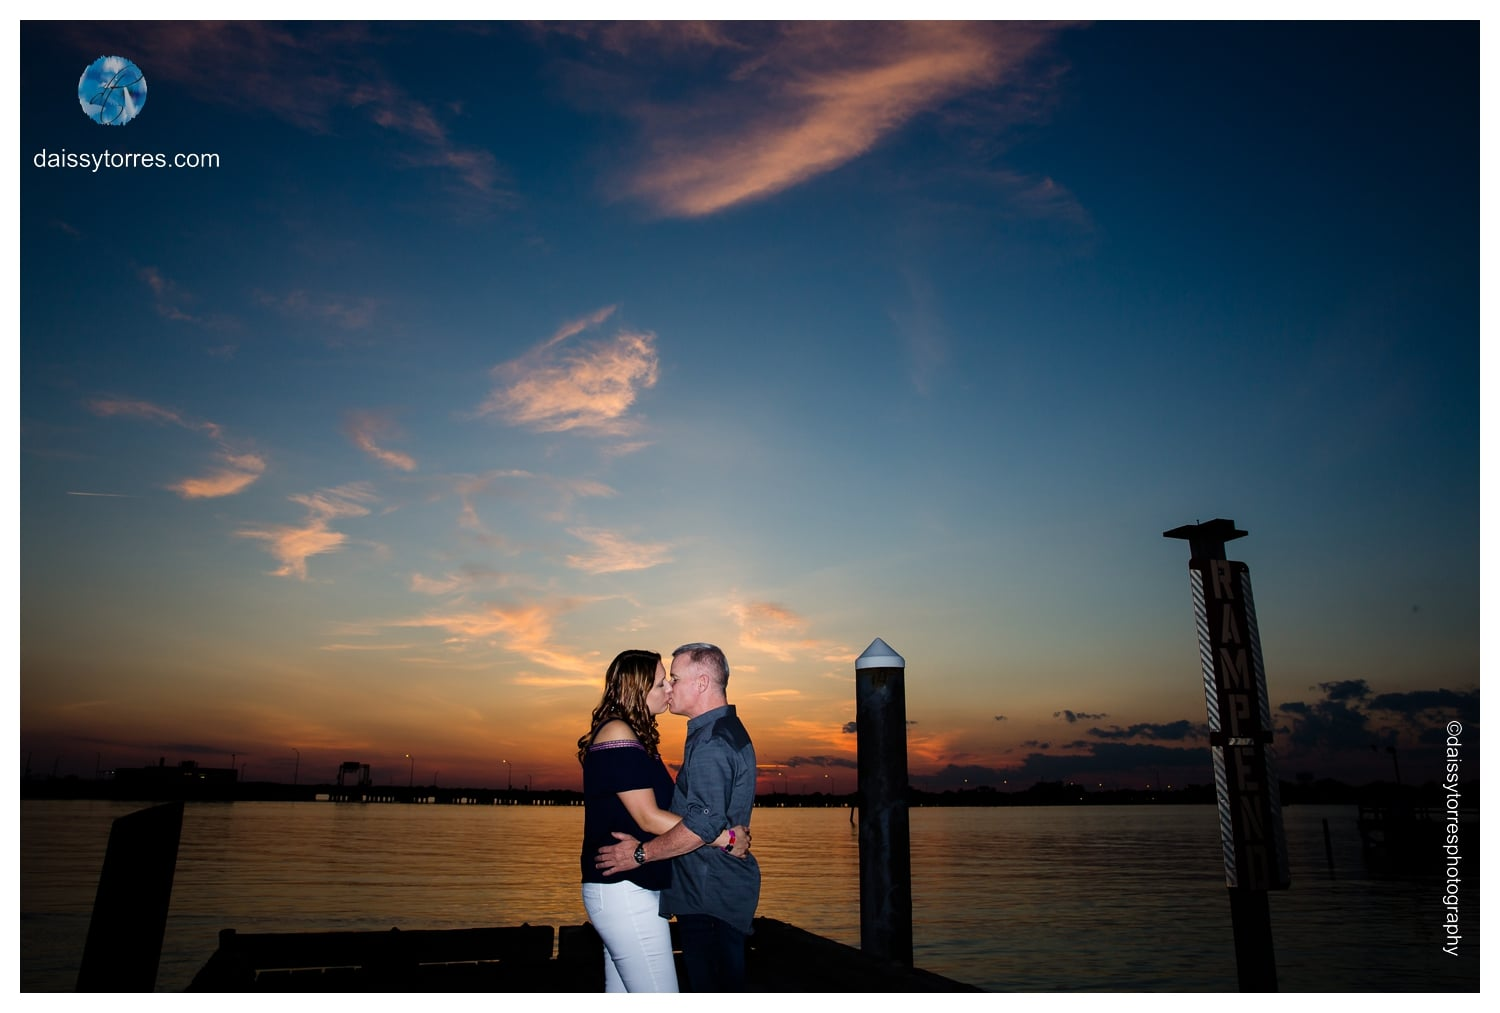 Angie and Dave - Sunset on the Pier